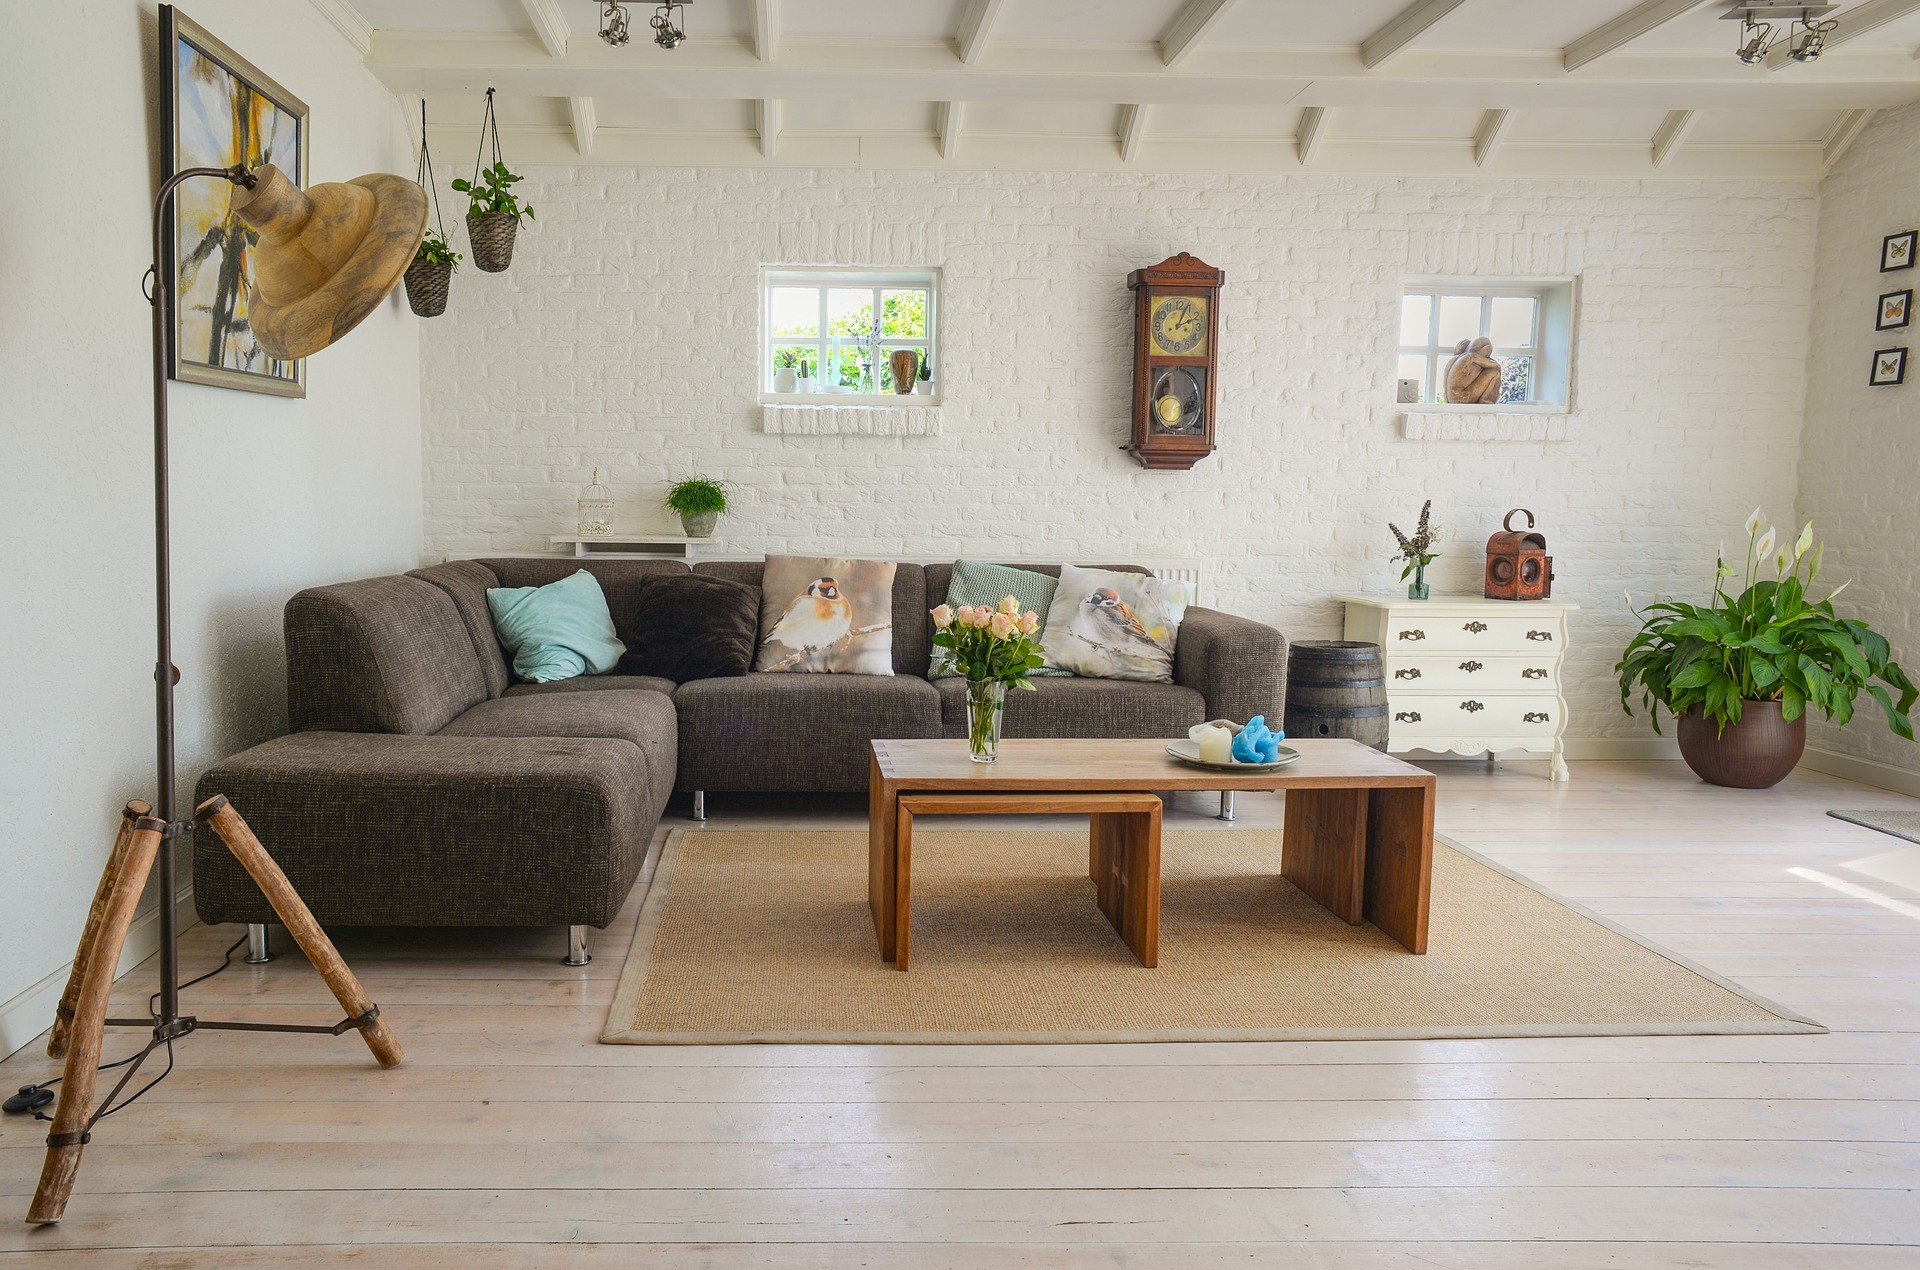 Things to know about furniture rental